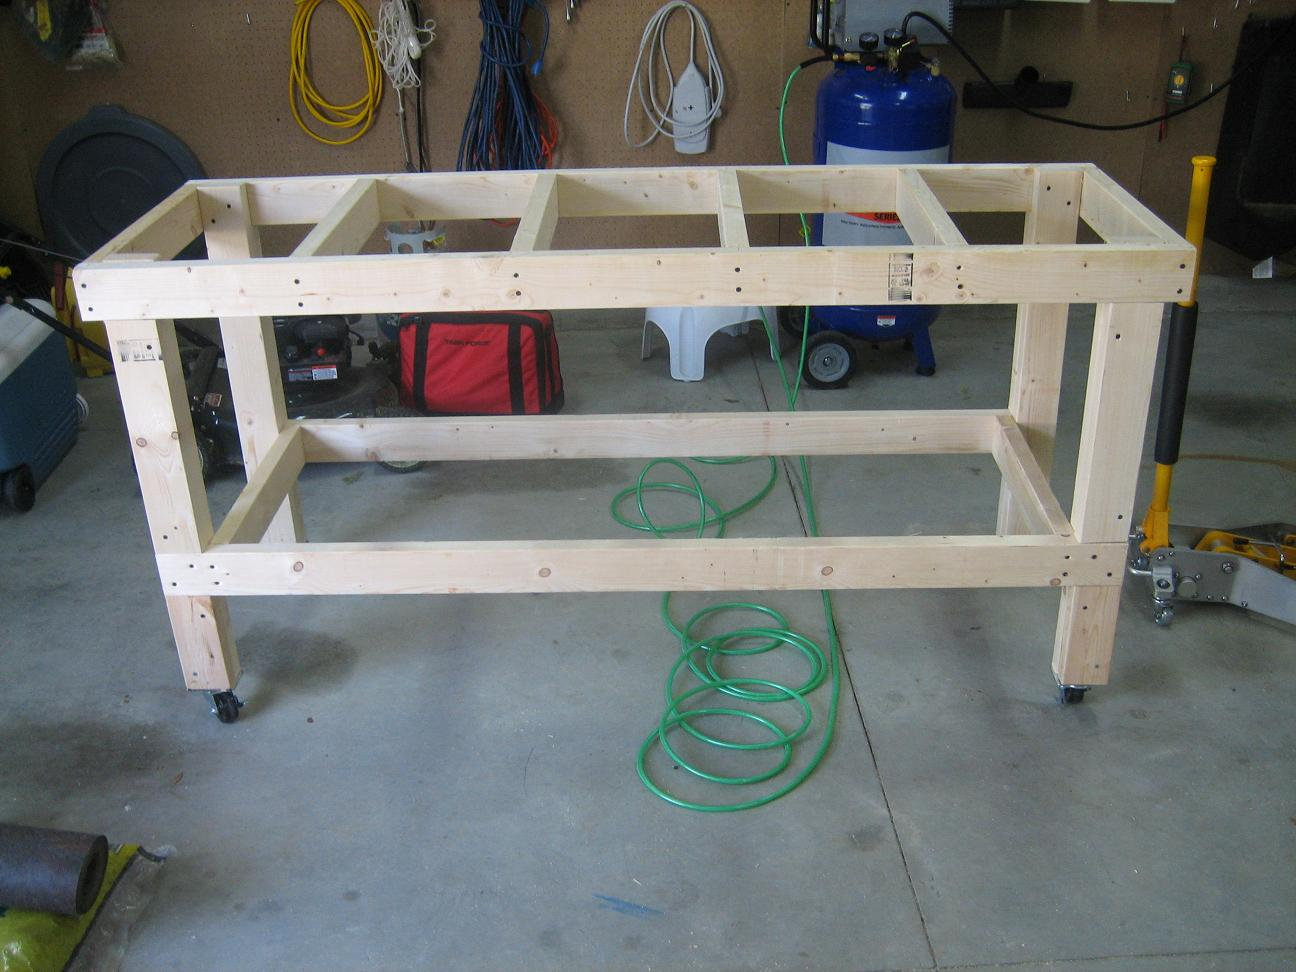 Eaa workbench completed andrew 39 s rv 7 build log Table making ideas